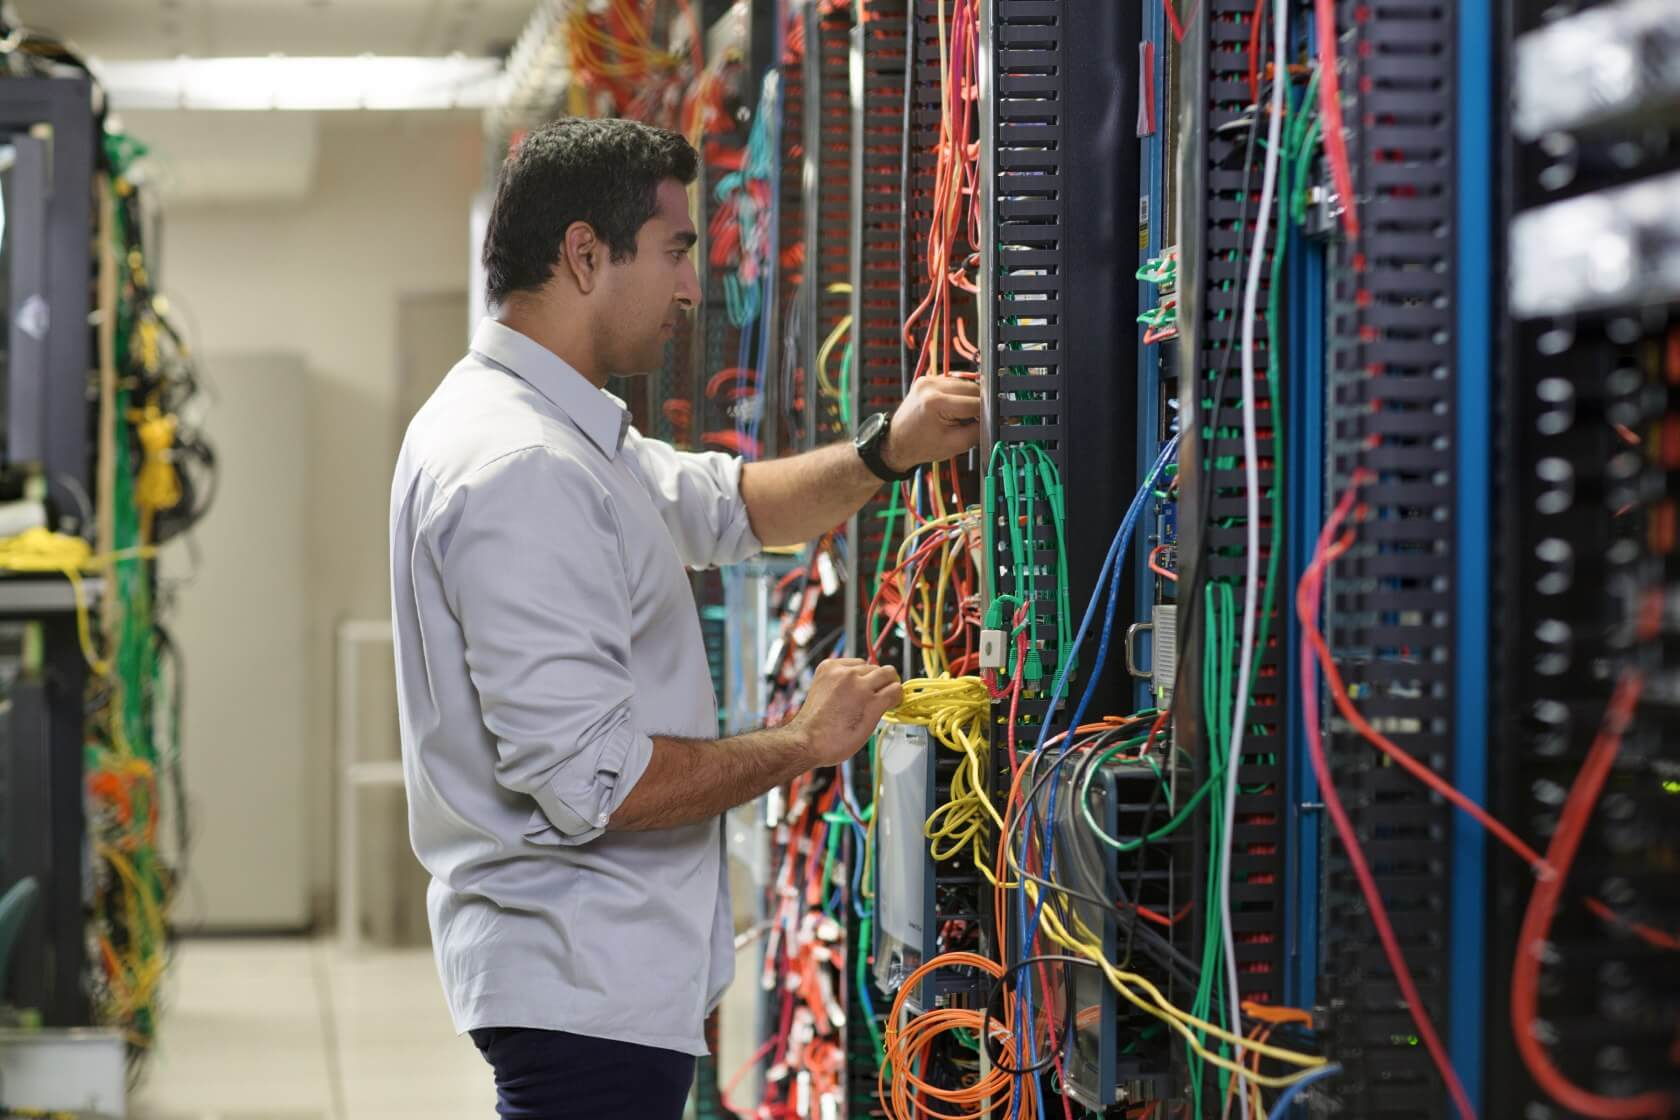 Show recruiters that you're a valuable asset by acing Cisco's CCNA certification exams